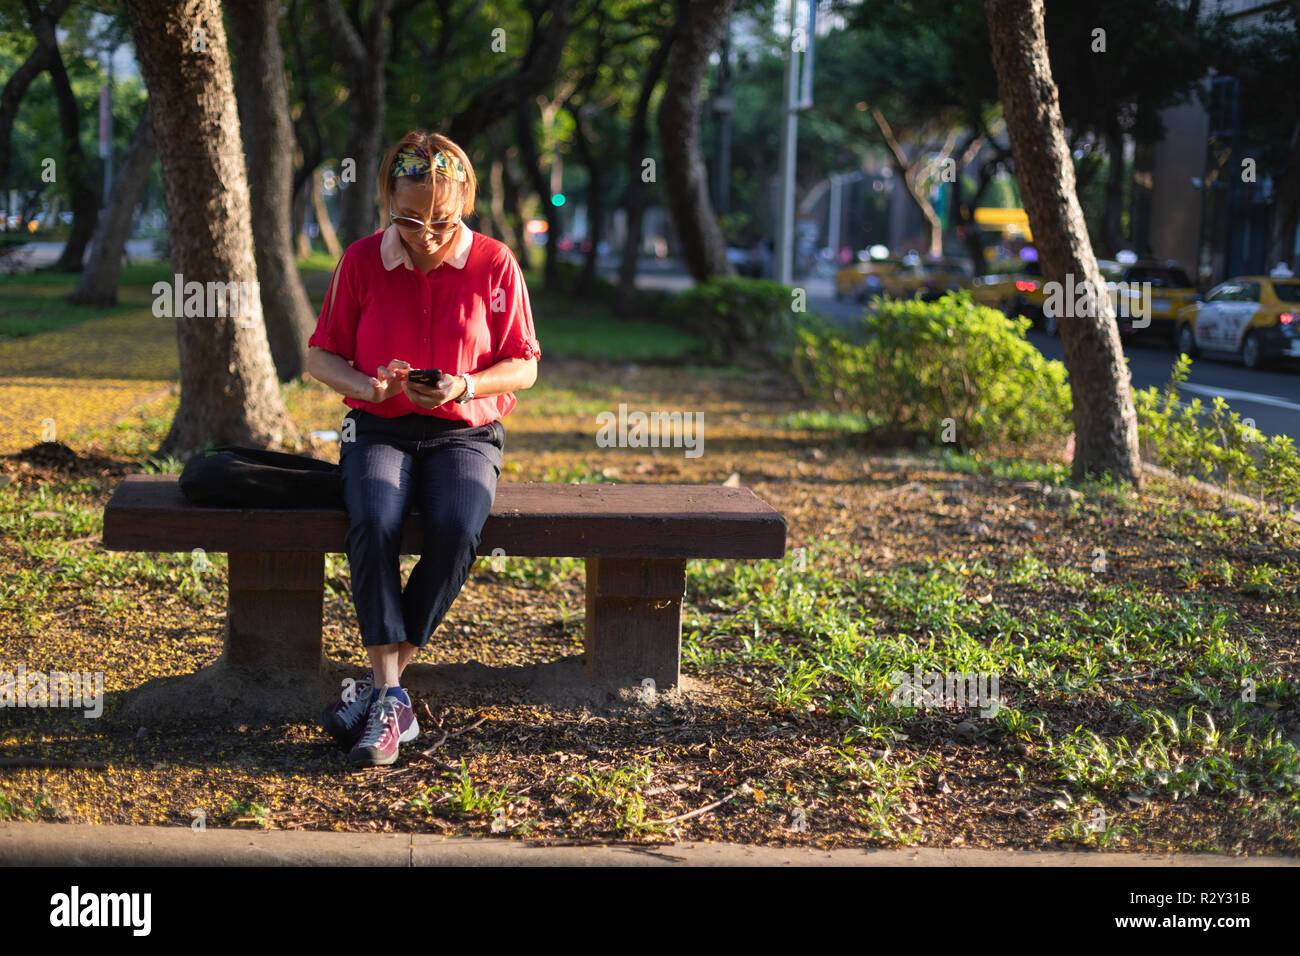 Mature Taiwanese Chinese woman sitting on a bench in an urban park looking at her mobile phone in the evening sun. - Stock Image